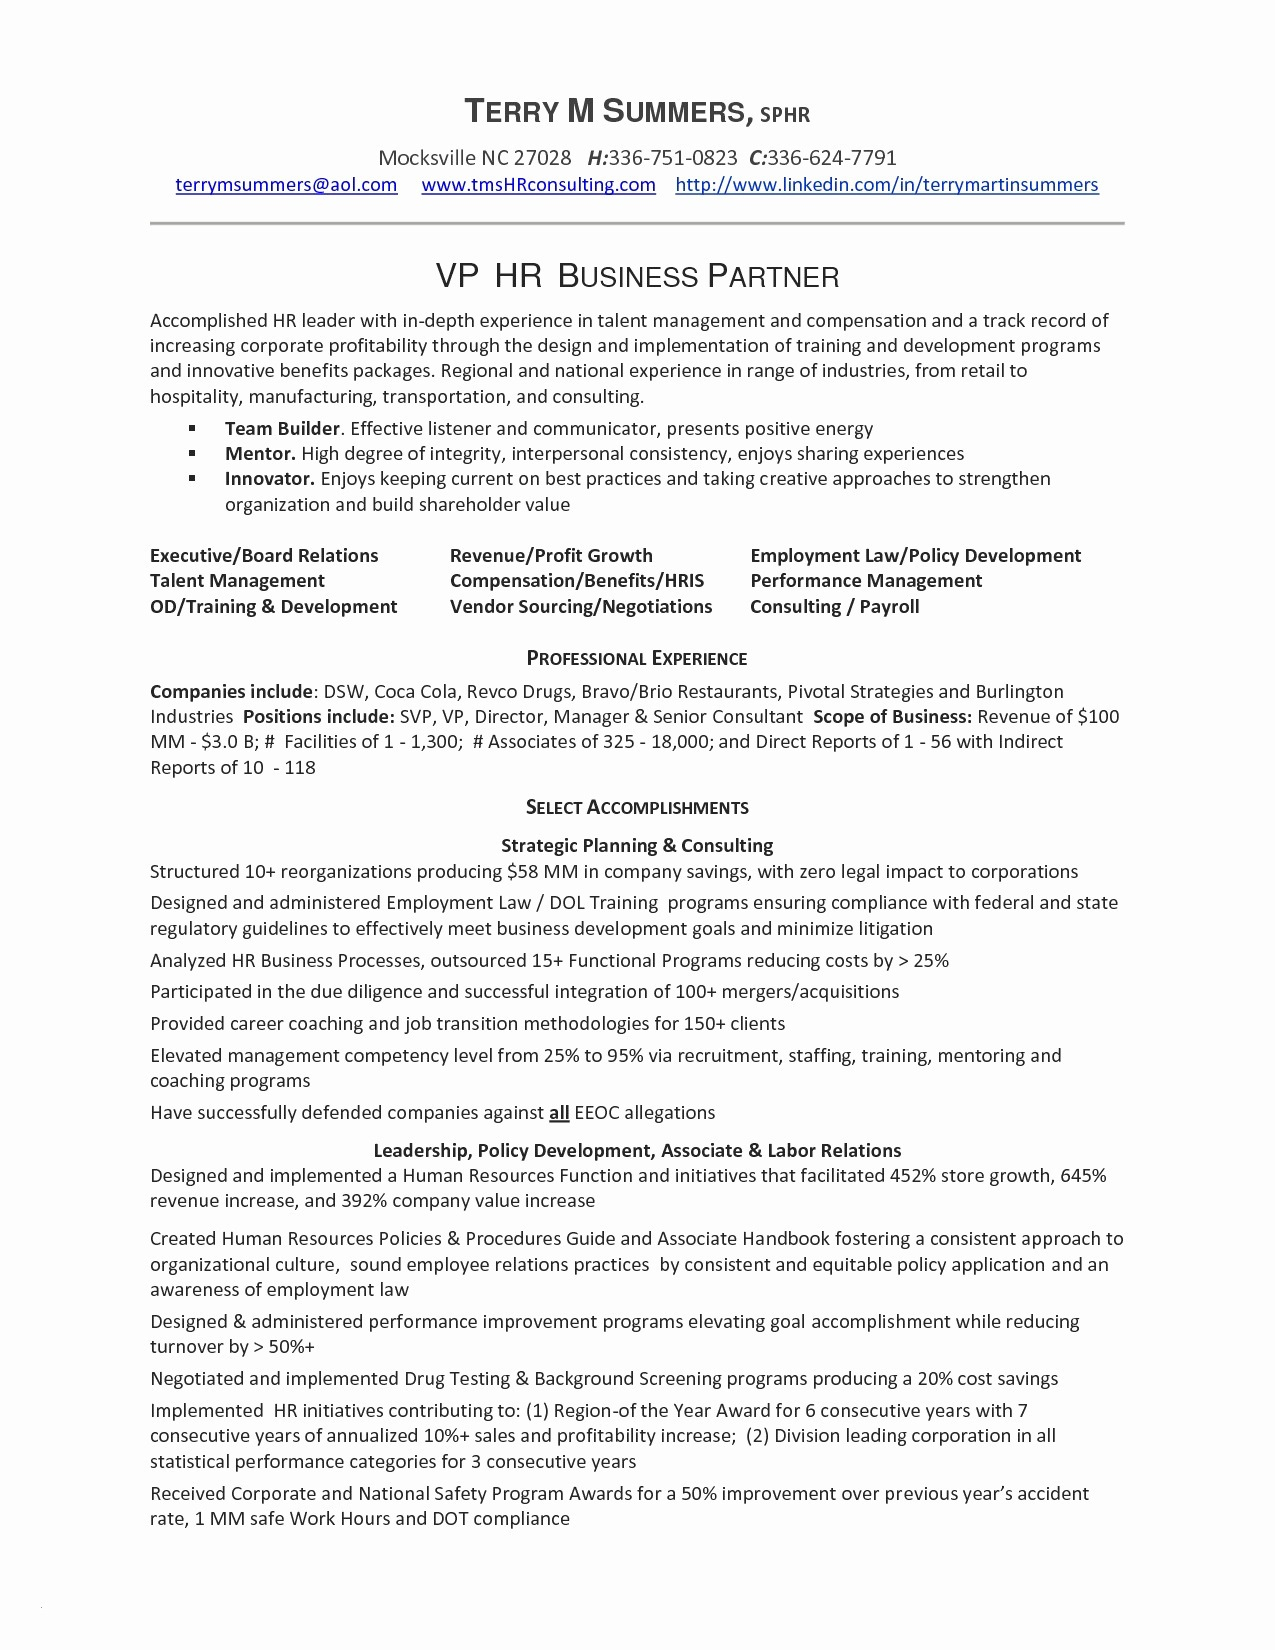 business analyst resume objective Collection-Simple Resume format Doc New Resume Template Doc Lovely Business Analyst Resume Sample Doc 15-n